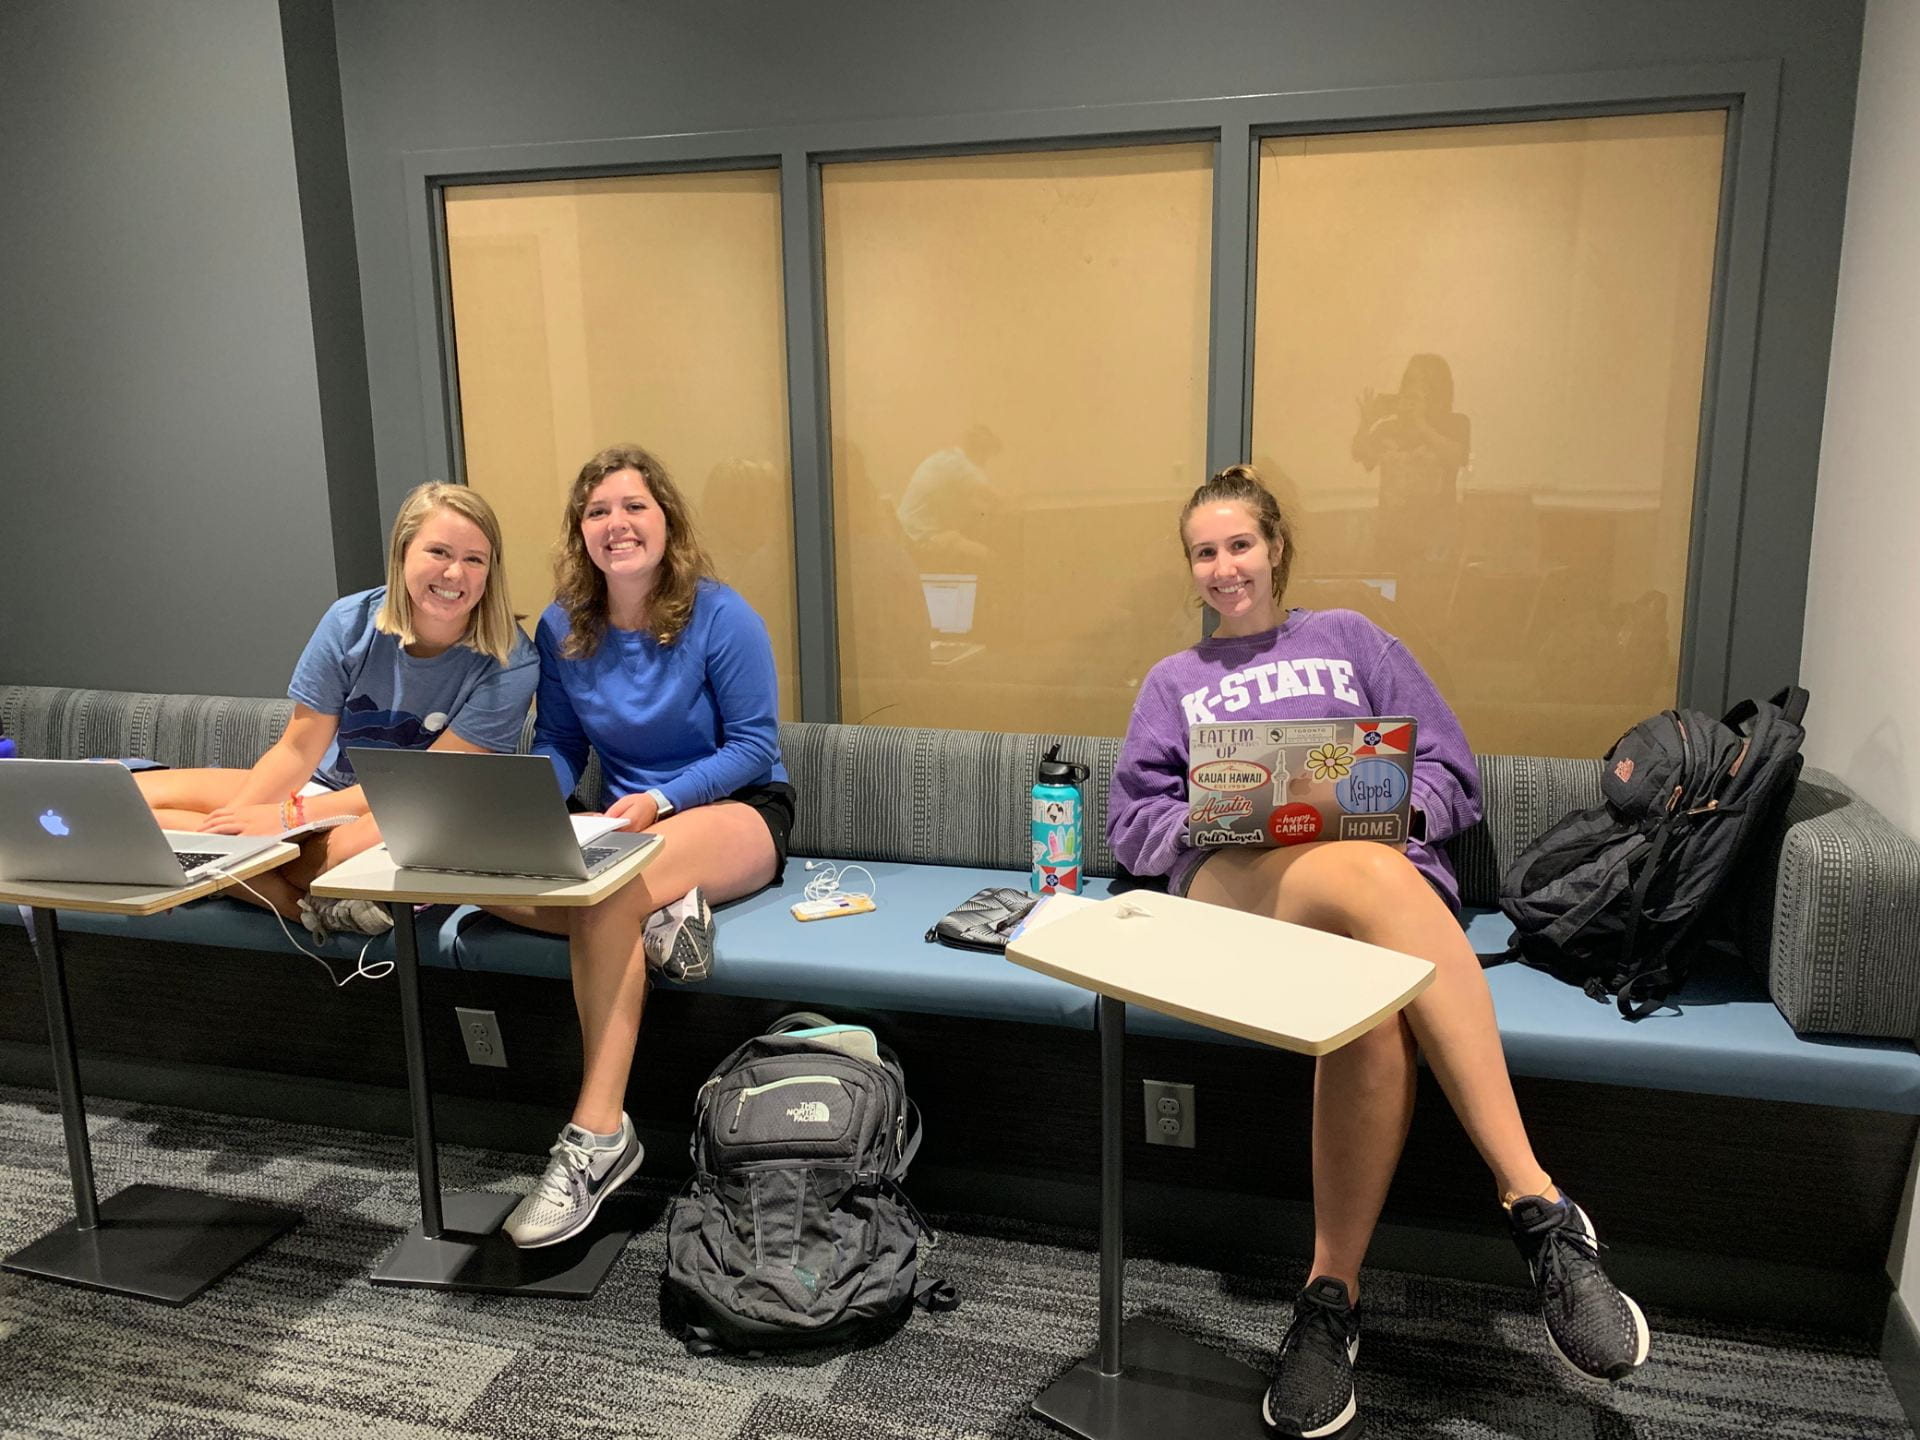 Three women sit on a blue padded bench with a gray wall and a window behind them.